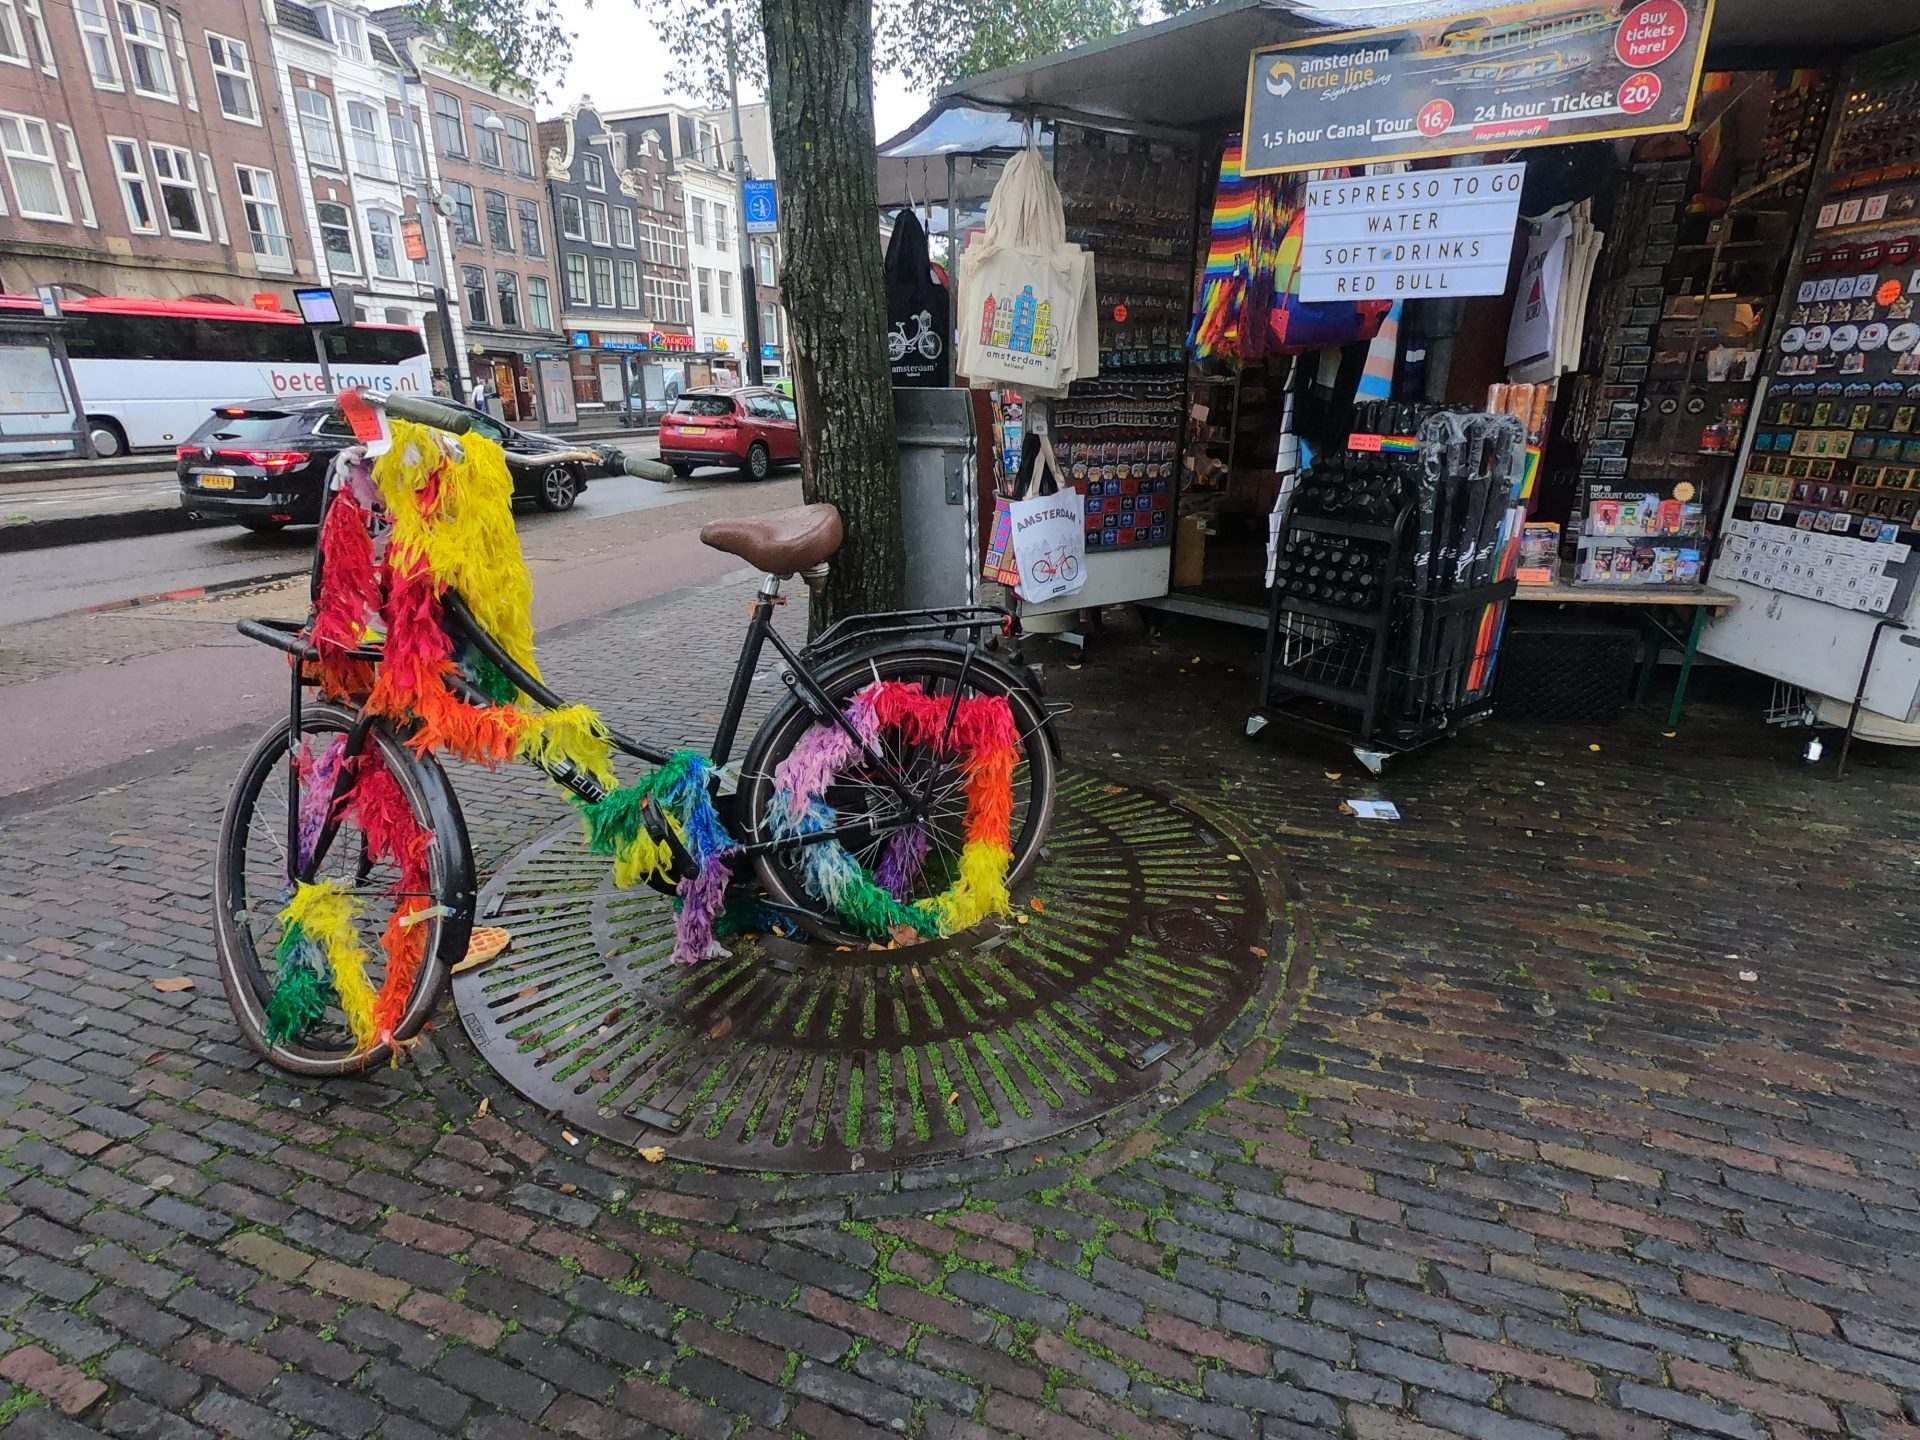 Amsterdam City Travel Guide